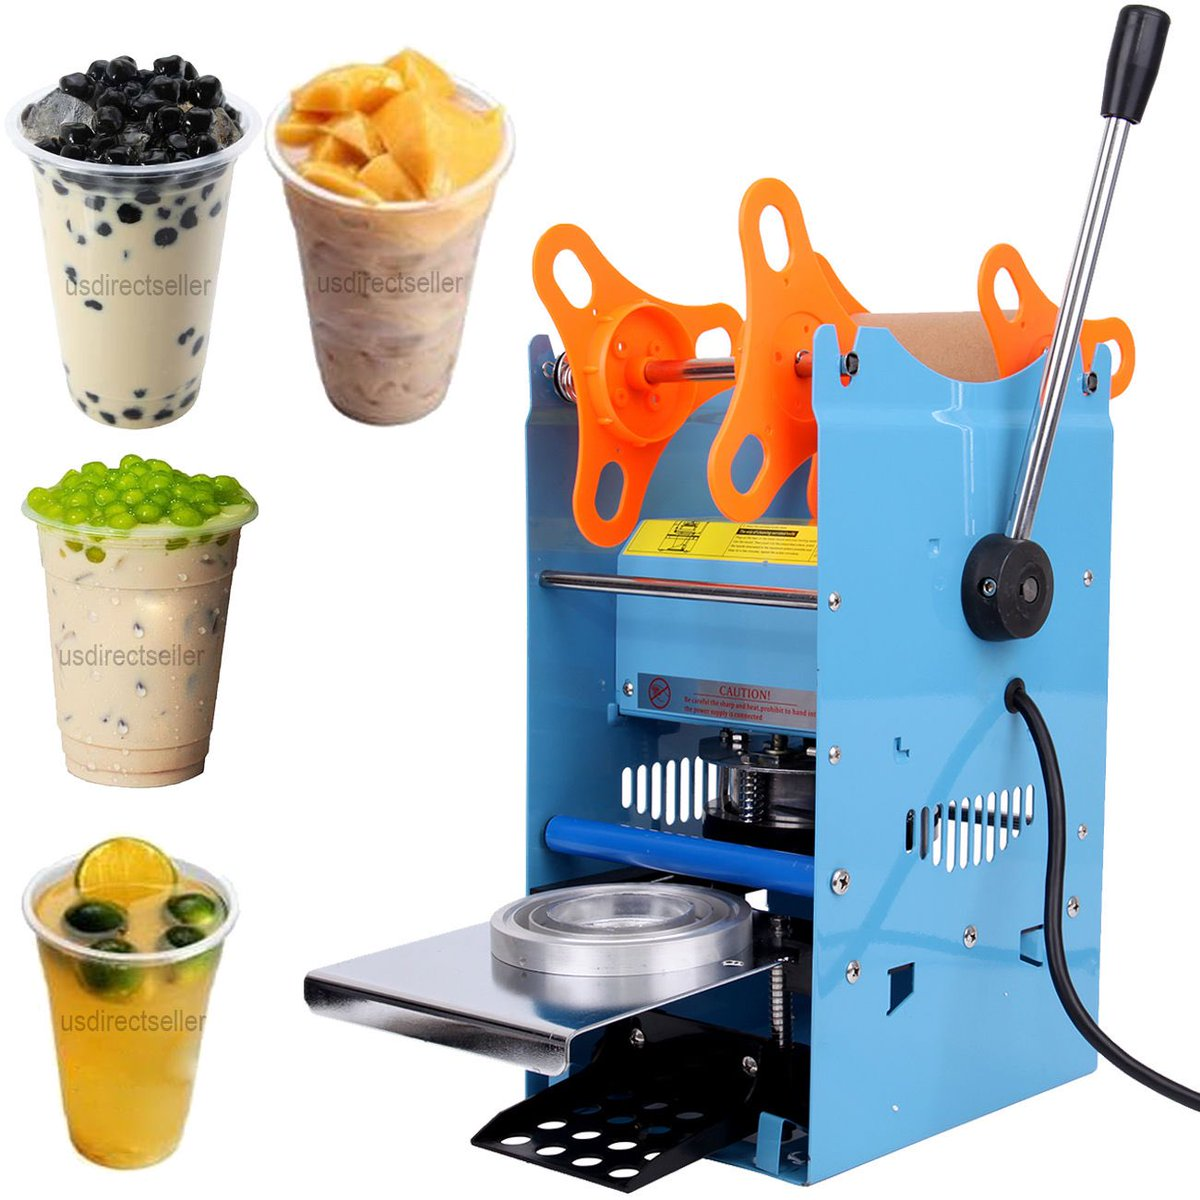 We've just ordered our Sealing Machine   BUBBLE TEA is coming back to Leicester   Asian Street Food | Bubble Tea | Beer     #BubbleTea #Tapioca #PoppingPearls #Boba #MilkTea #FruitTea #Leicester #BubbleTeaLeicester #WantonsBar #LoveBubbleTea #JuiceBalls